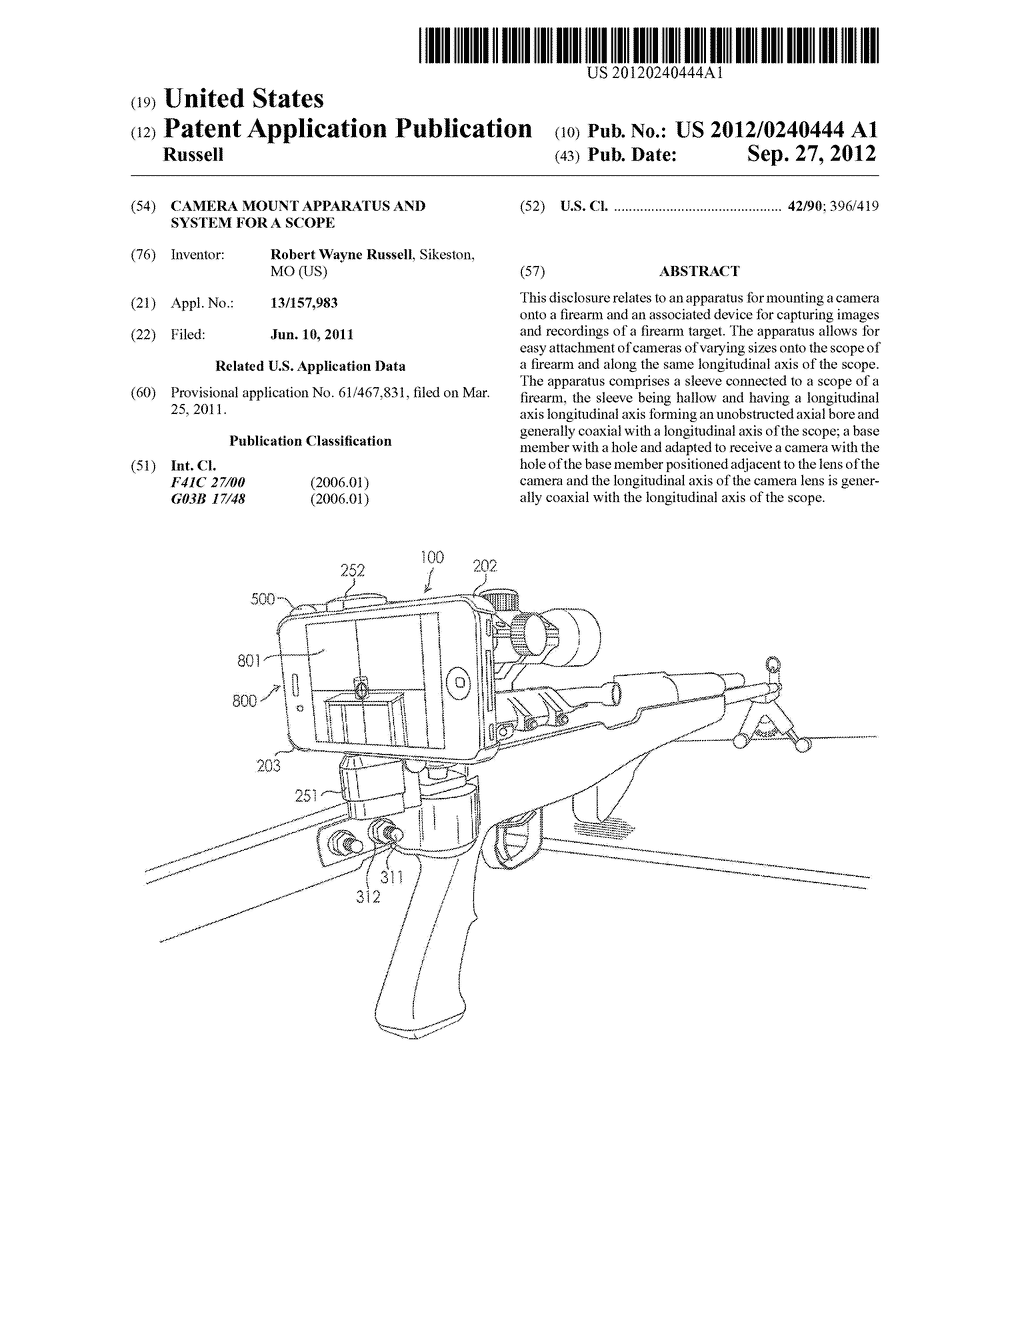 Camera Mount Apparatus and System for a Scope - diagram, schematic, and image 01